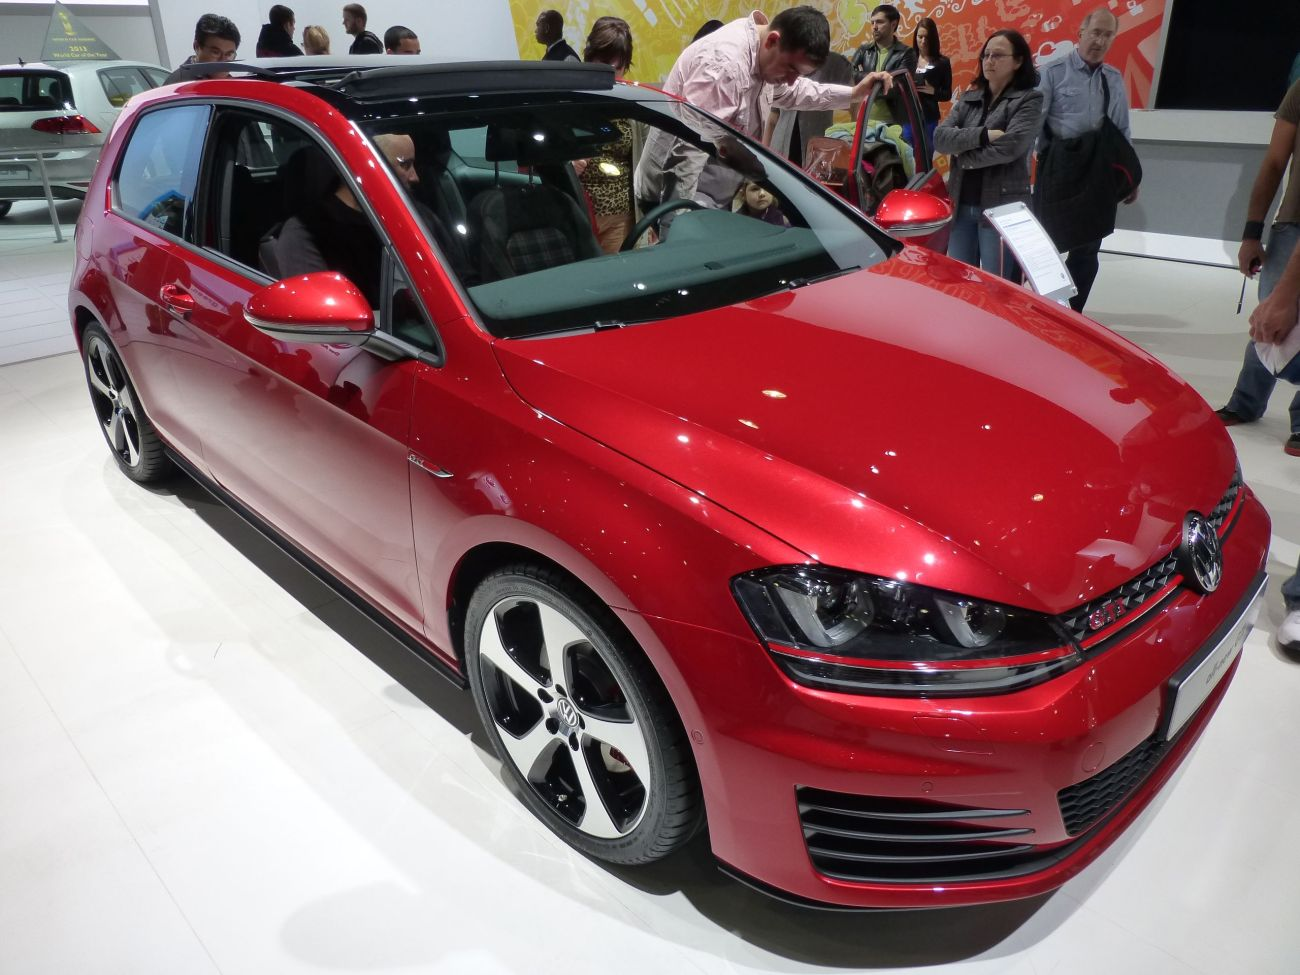 Checked out the vin of the gti and golf they are wvw made in wolfsburg i don t think the mexican factory has started cranking them out yet